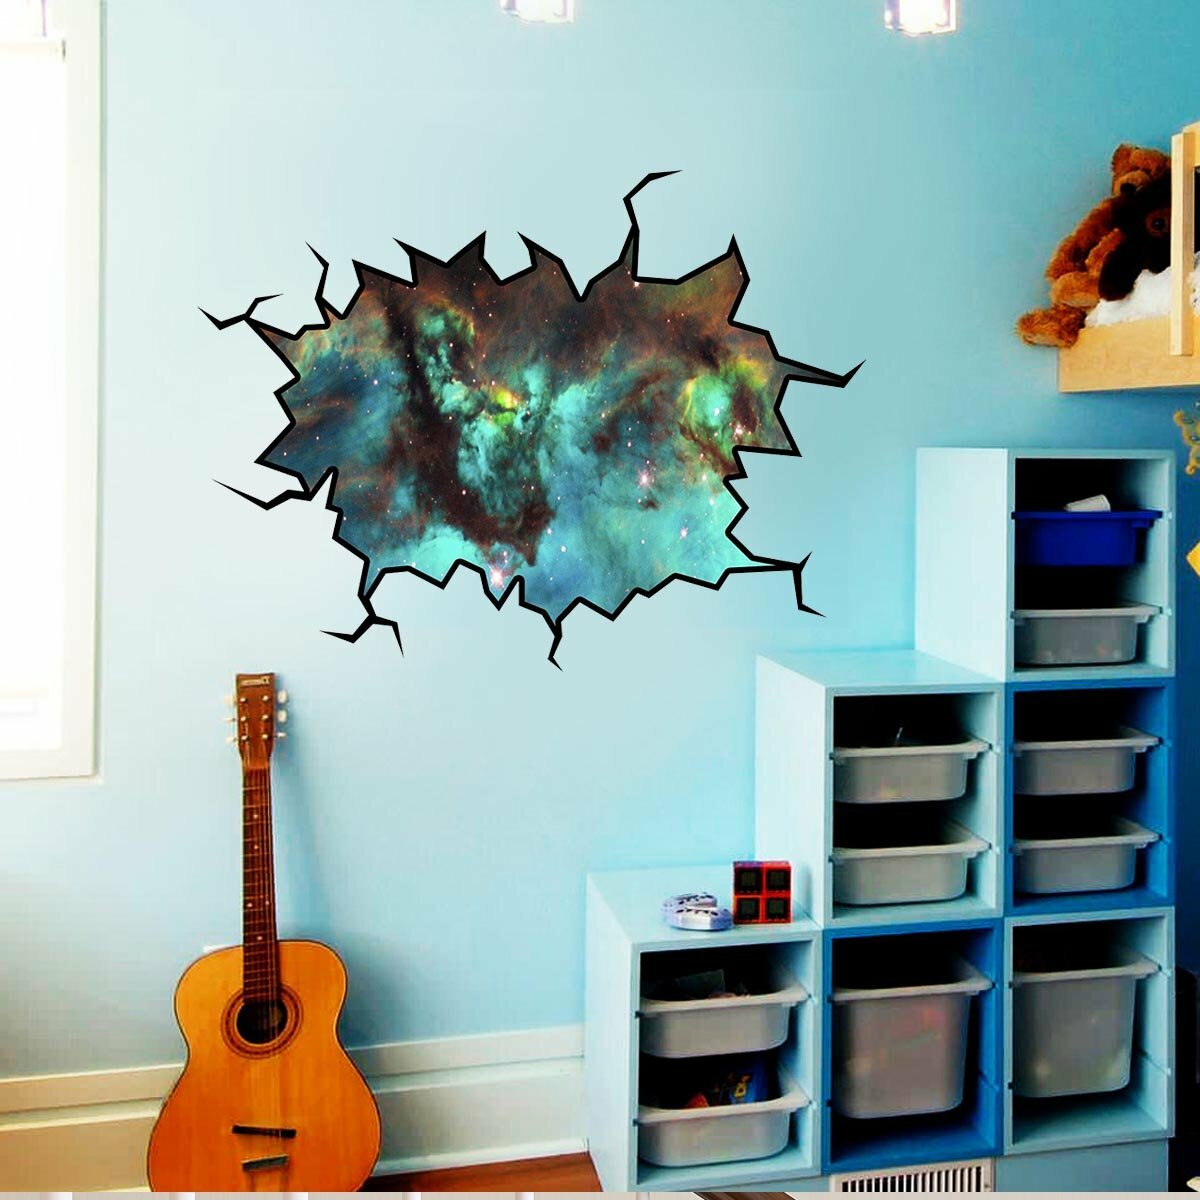 East Urban Home Cosmic Outer Space Cracked Wall Decal Wayfair